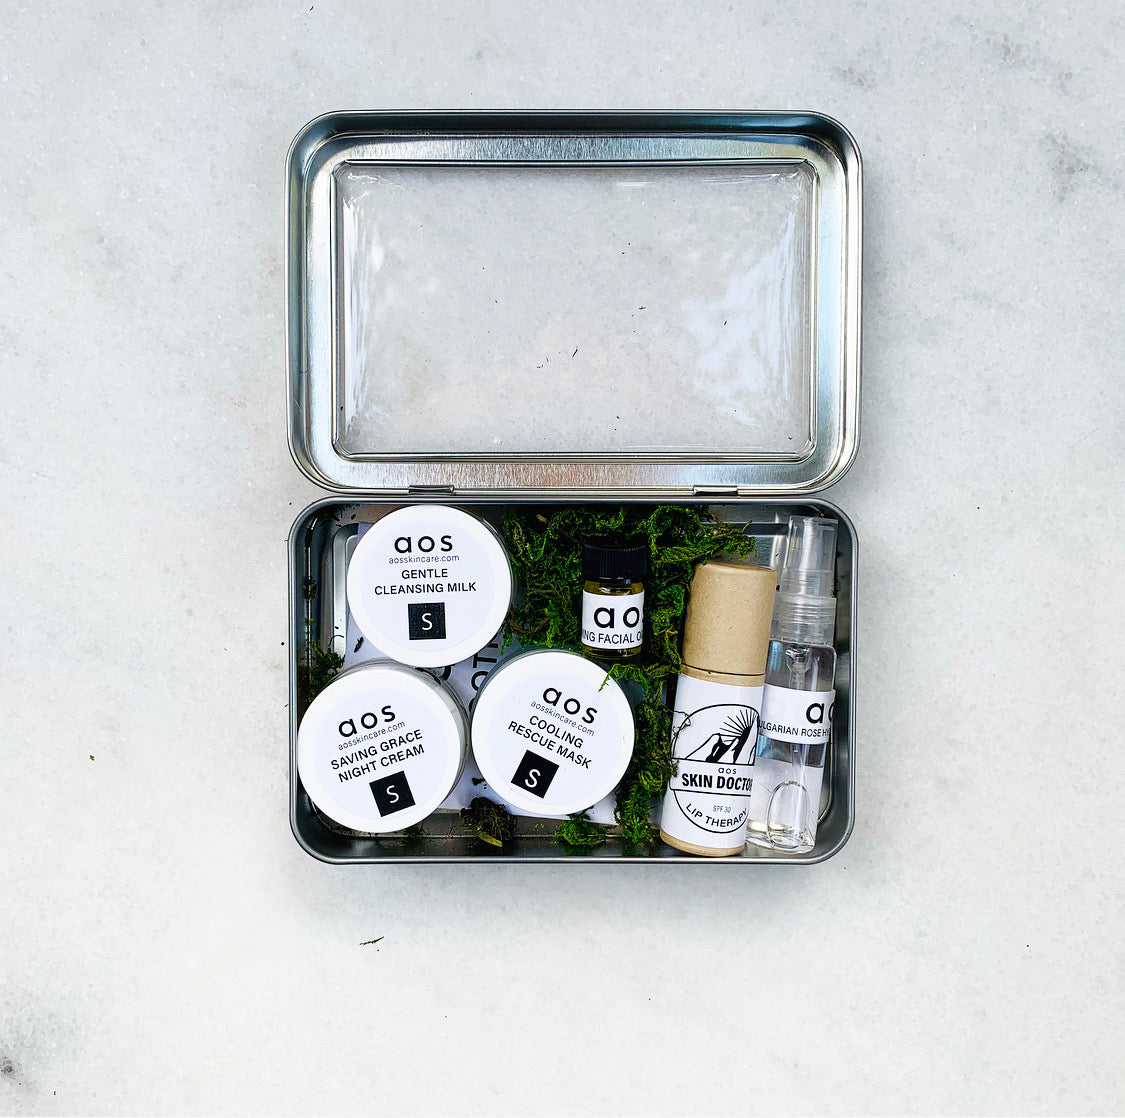 Soothe Travel Kit